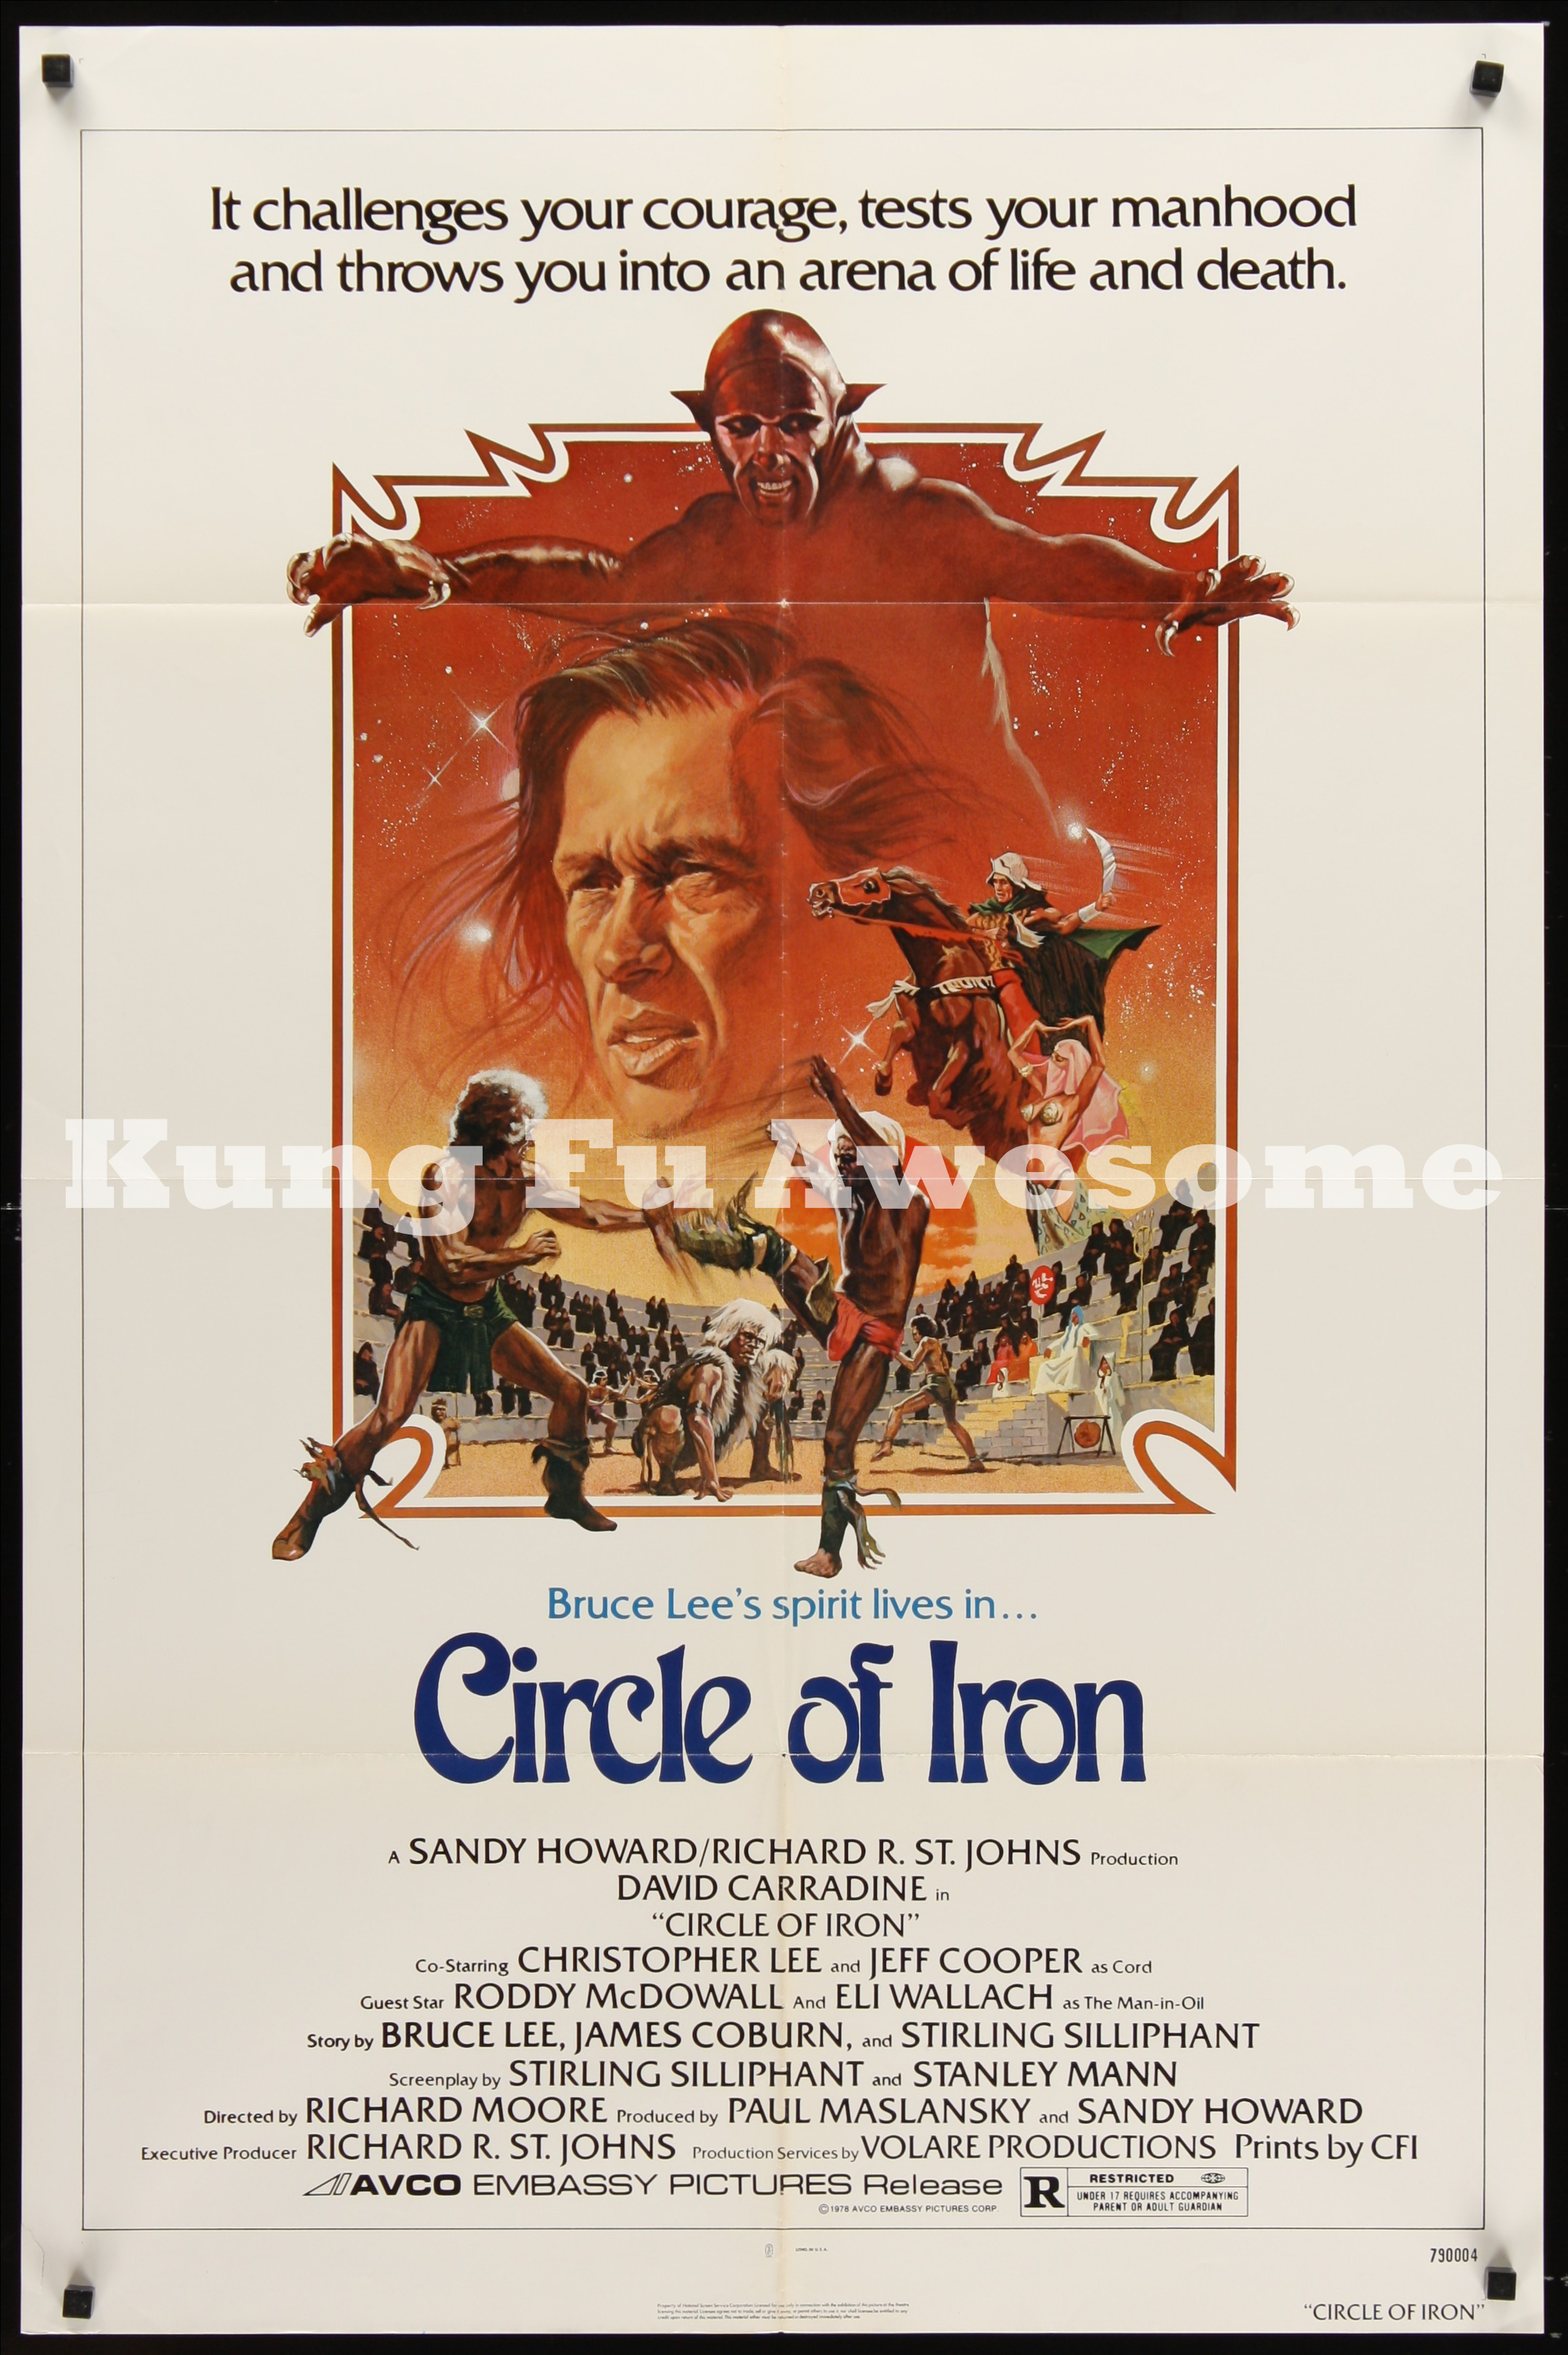 circle_of_iron_NZ04036_L.jpg